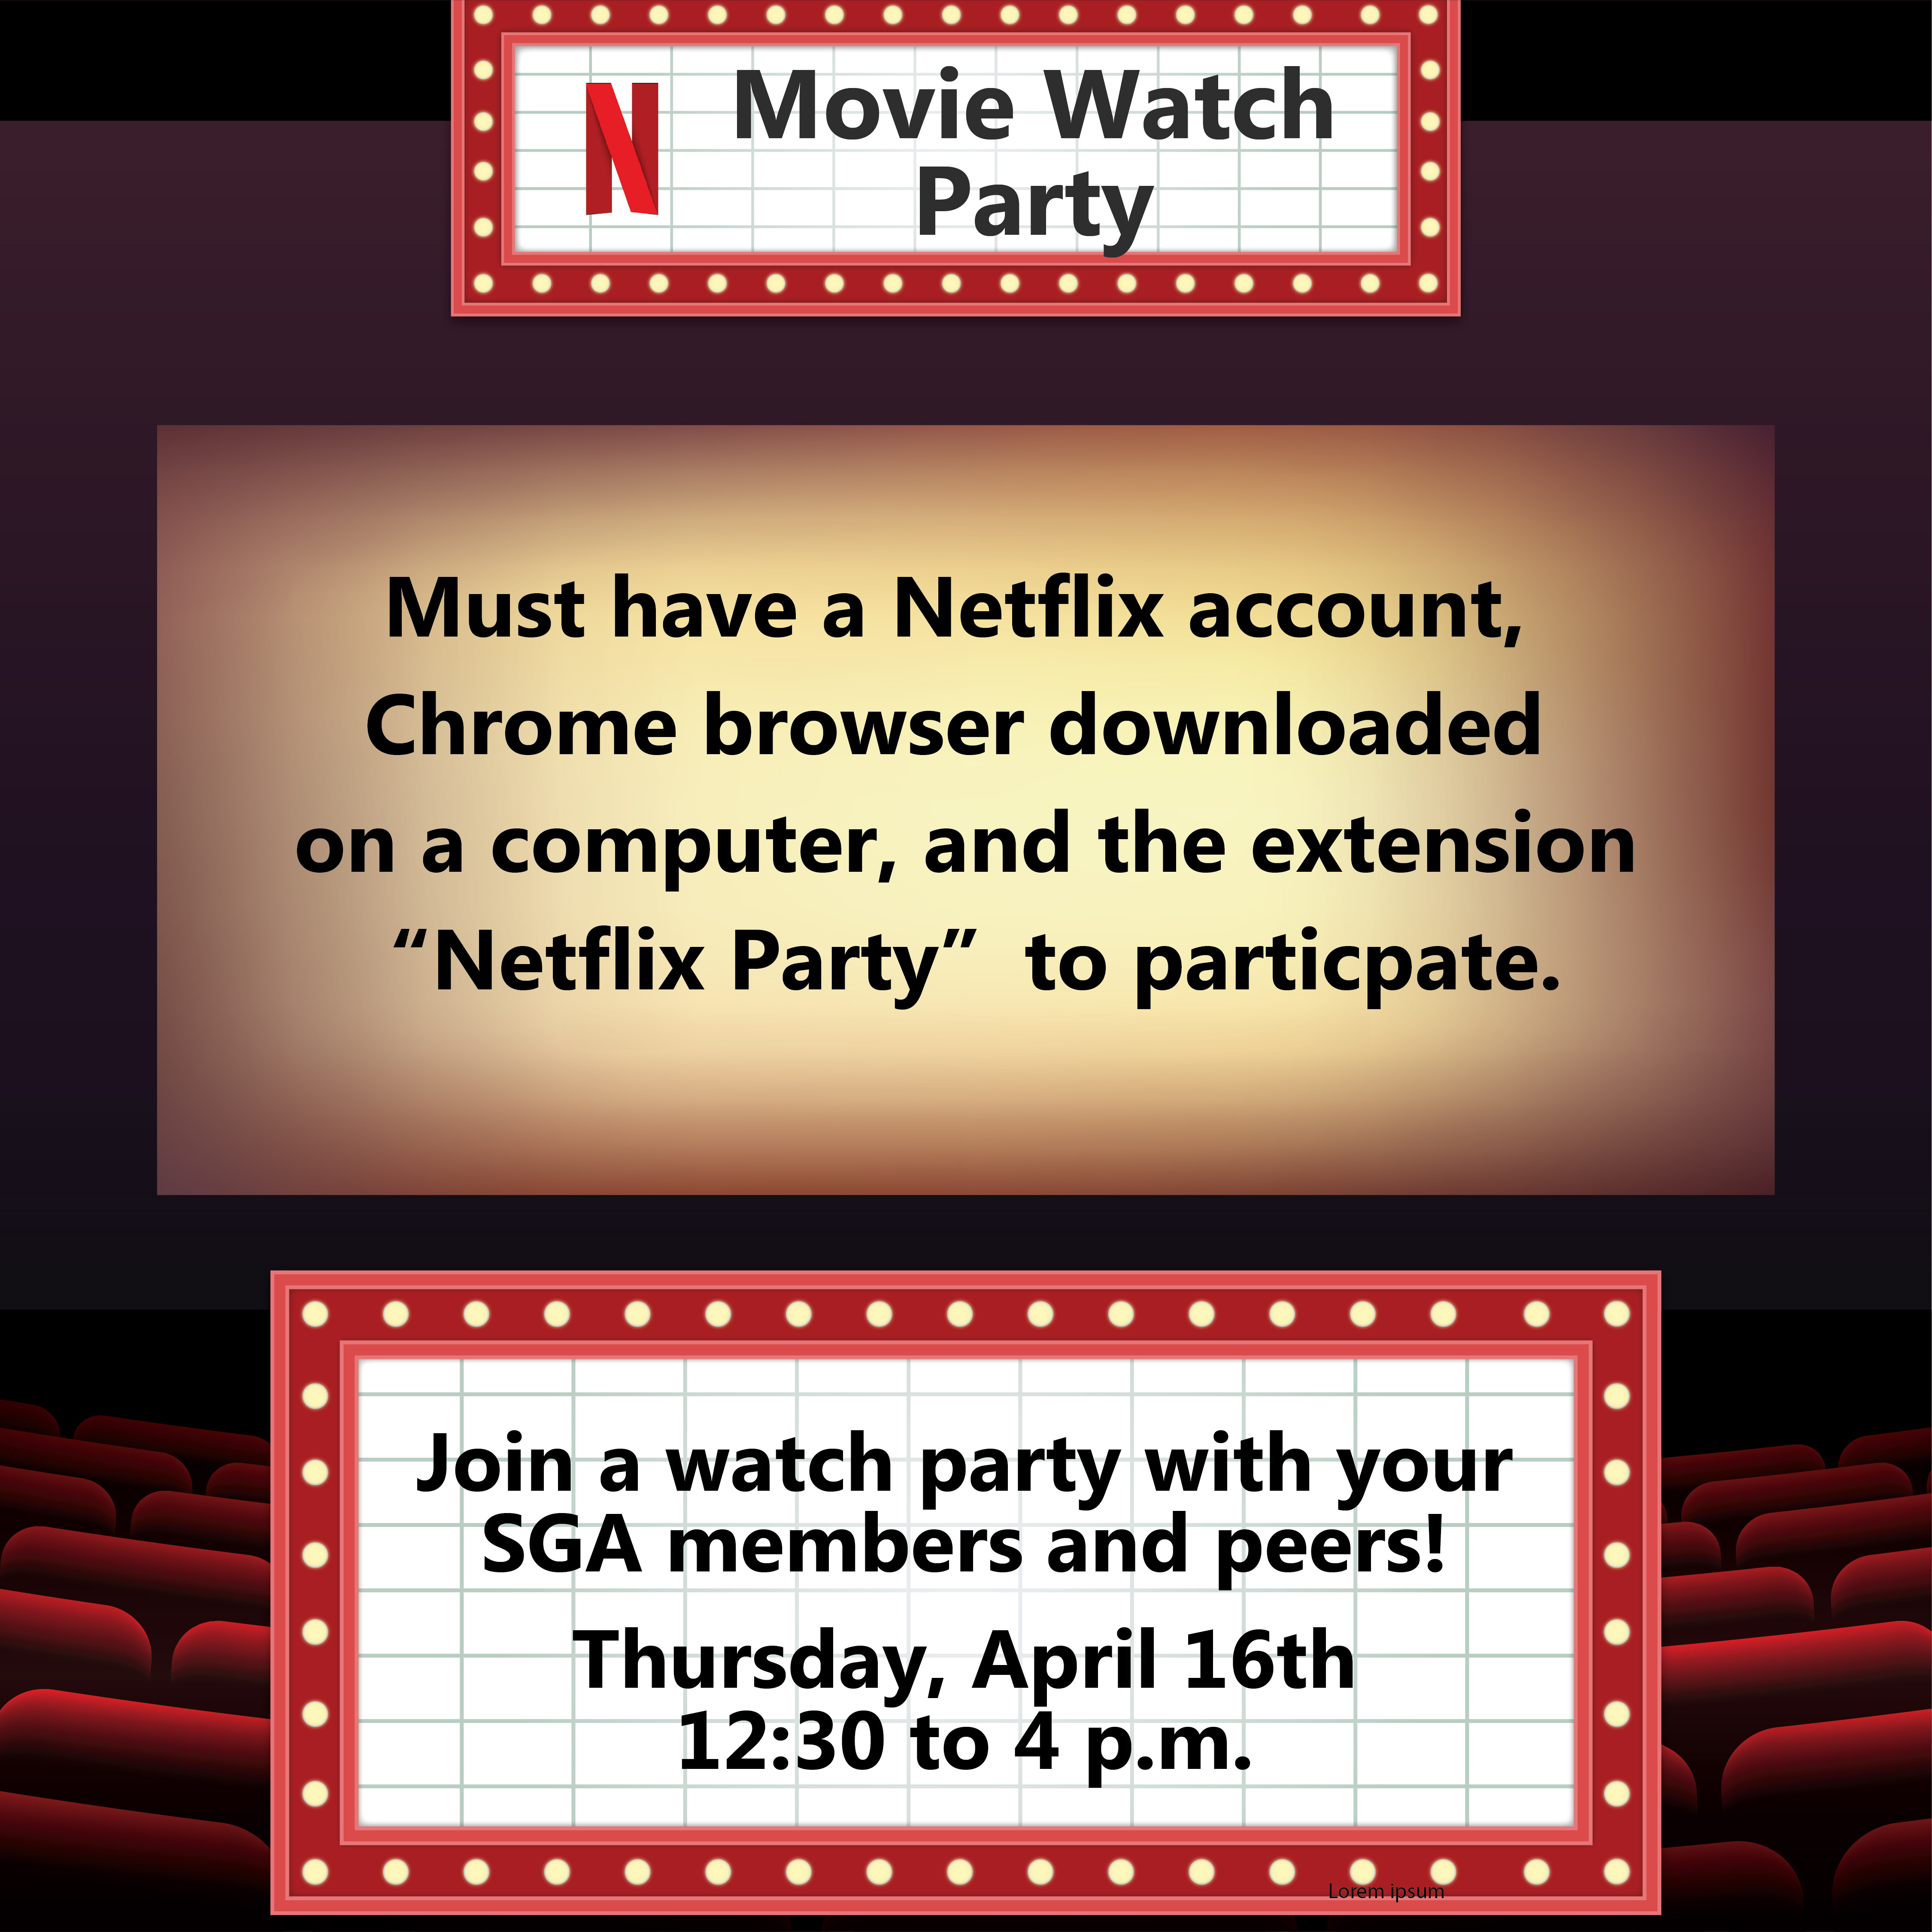 Must have a Netflix account, Chrome browser downloaded on a computer and the extension Netflix Party to partixipate.